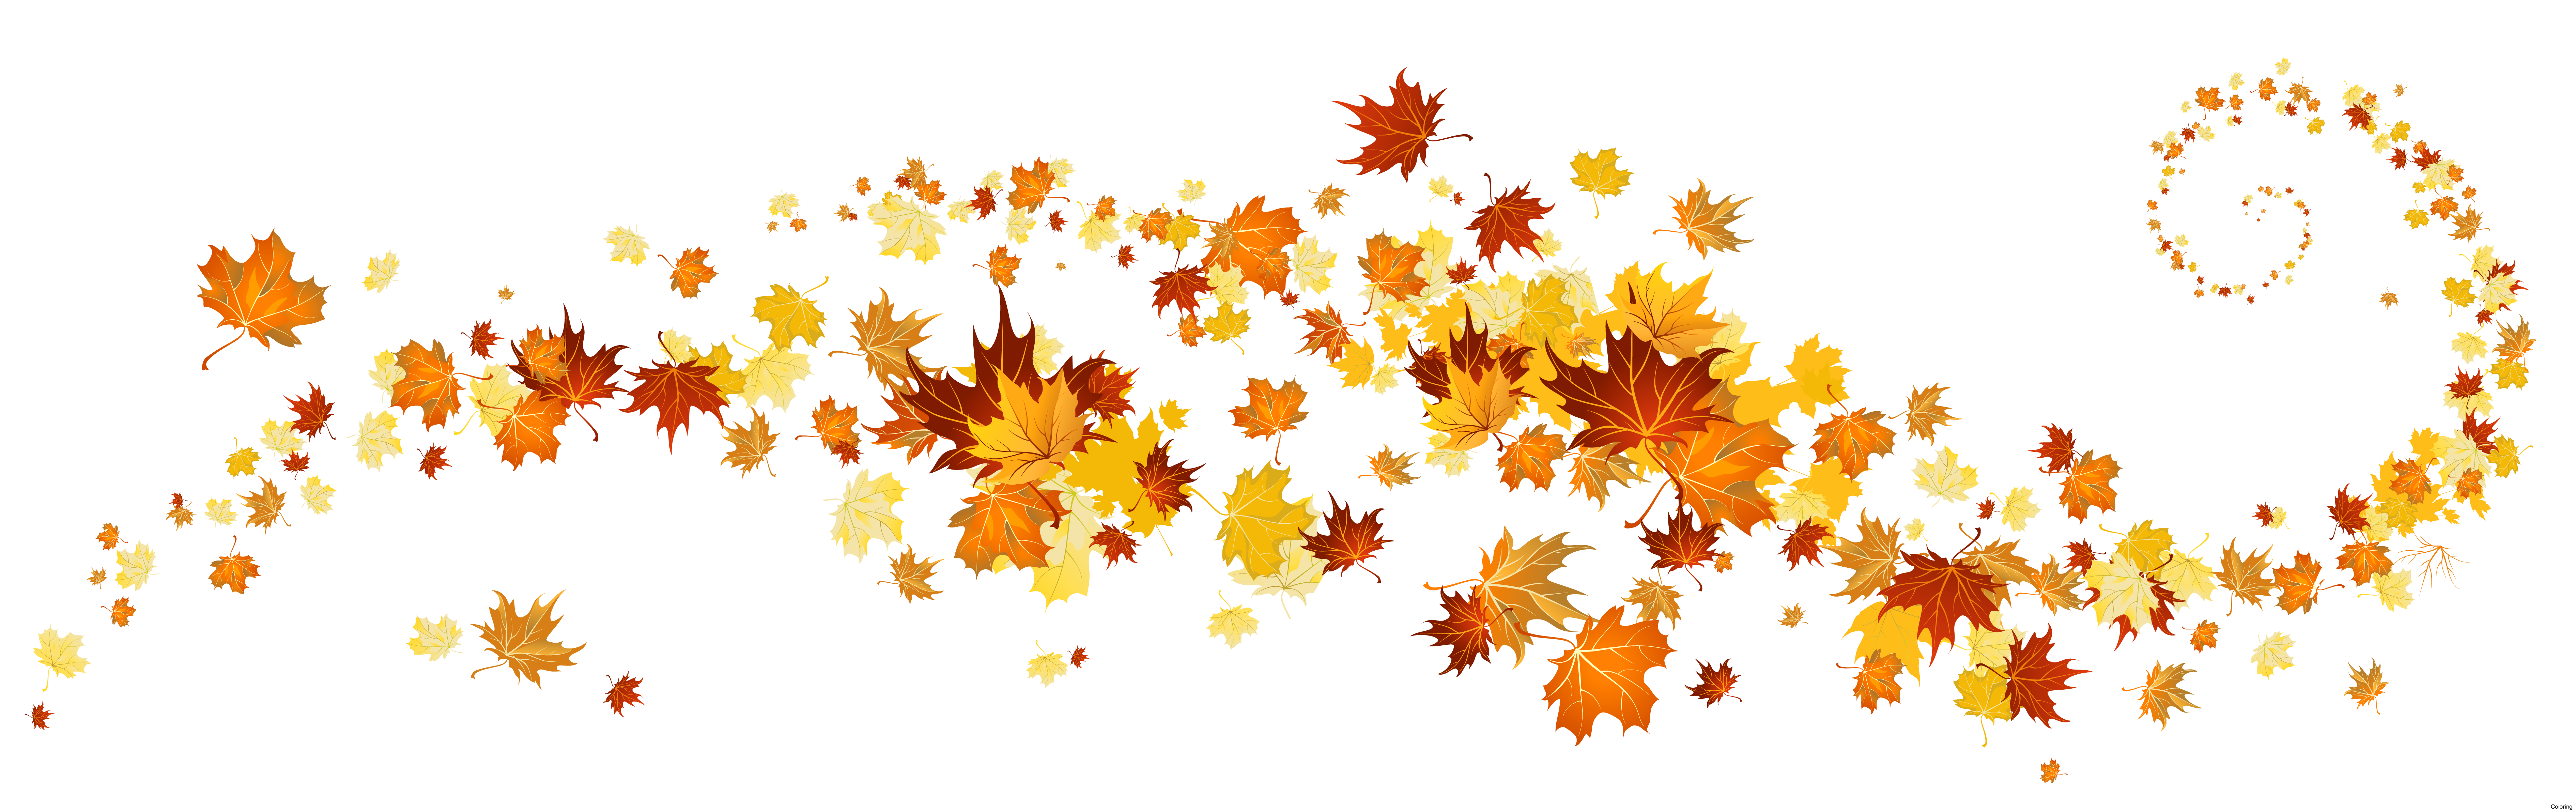 Apple and fall leaf clipart vector black and white stock Autumn leaf color Clip art - autumn leaves 7561*2383 transprent Png ... vector black and white stock